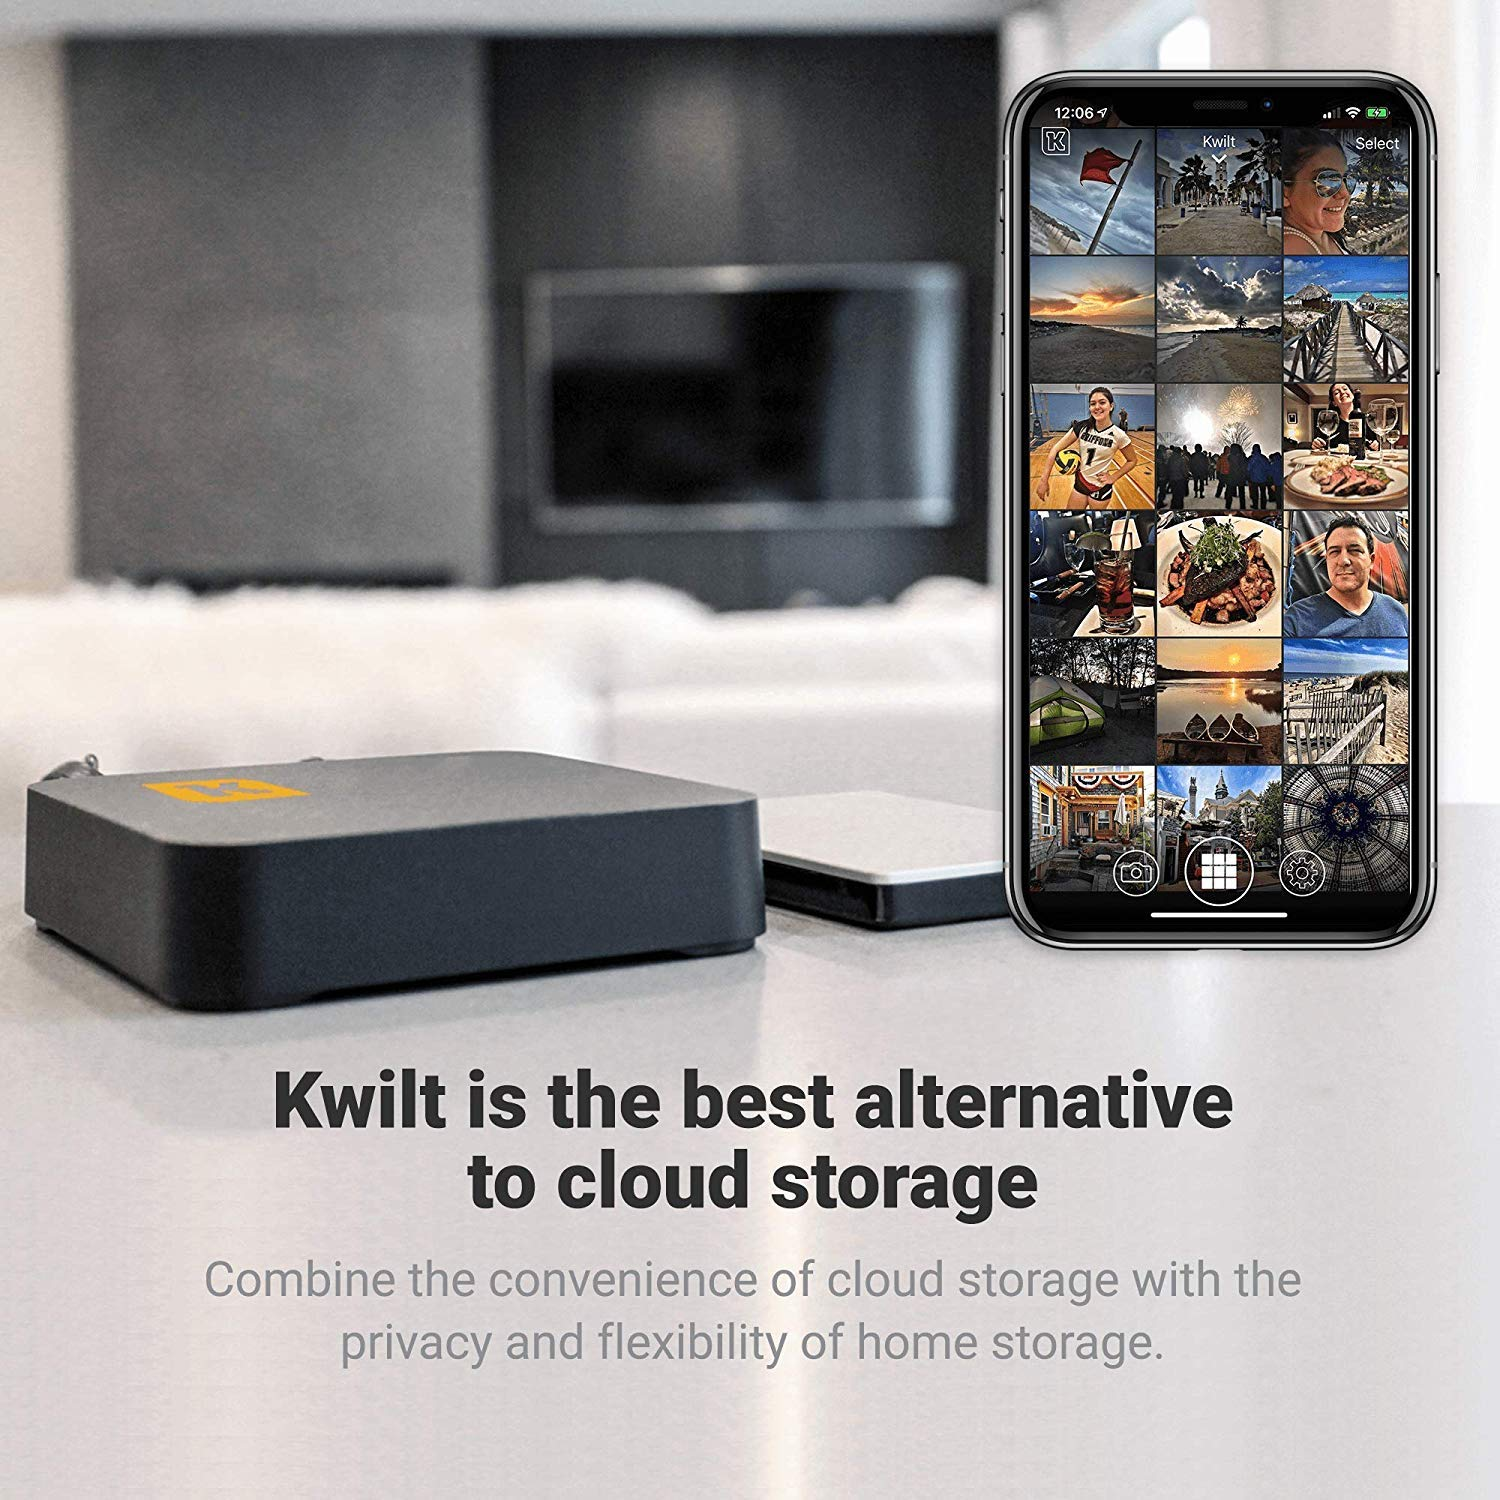 Kwiltgo Iphone Android External Storage Wireless Storage Drive And Photo Video Storage Device Wifi Backup Drive Remote Private Cloud Storage 16